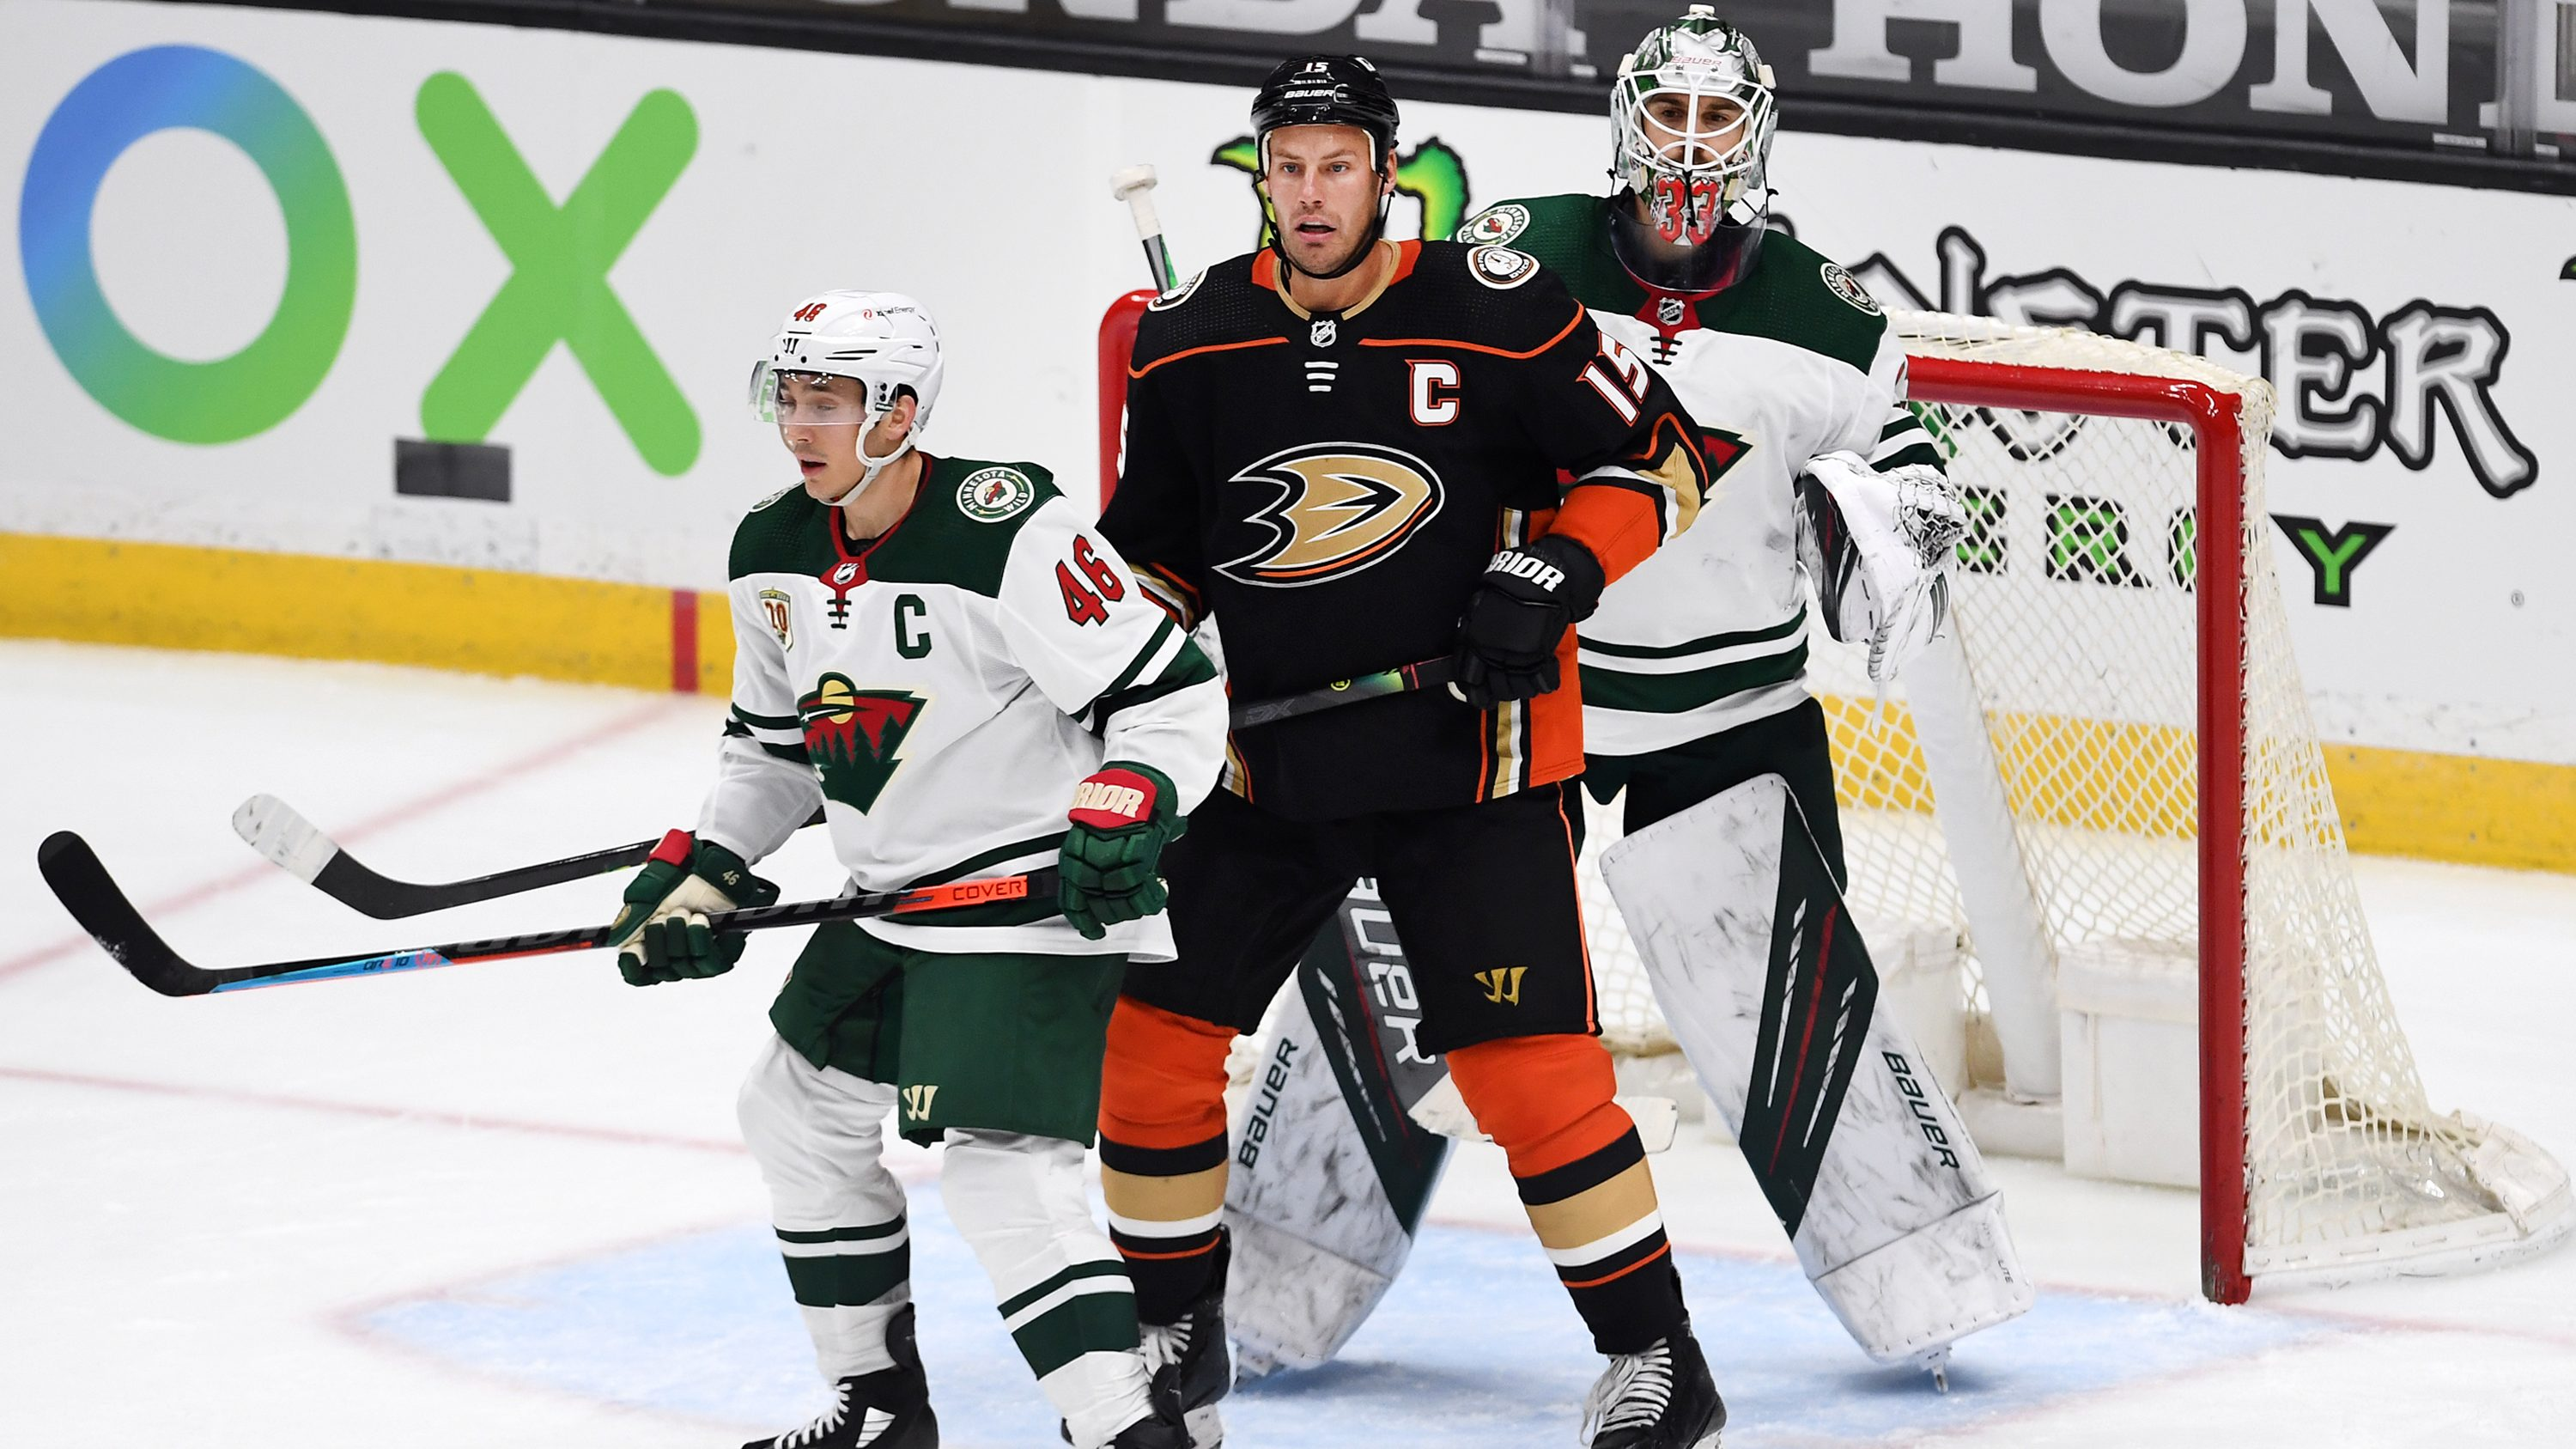 Ducks-Wild stream: NHL on NBCSN's Wednesday matchup